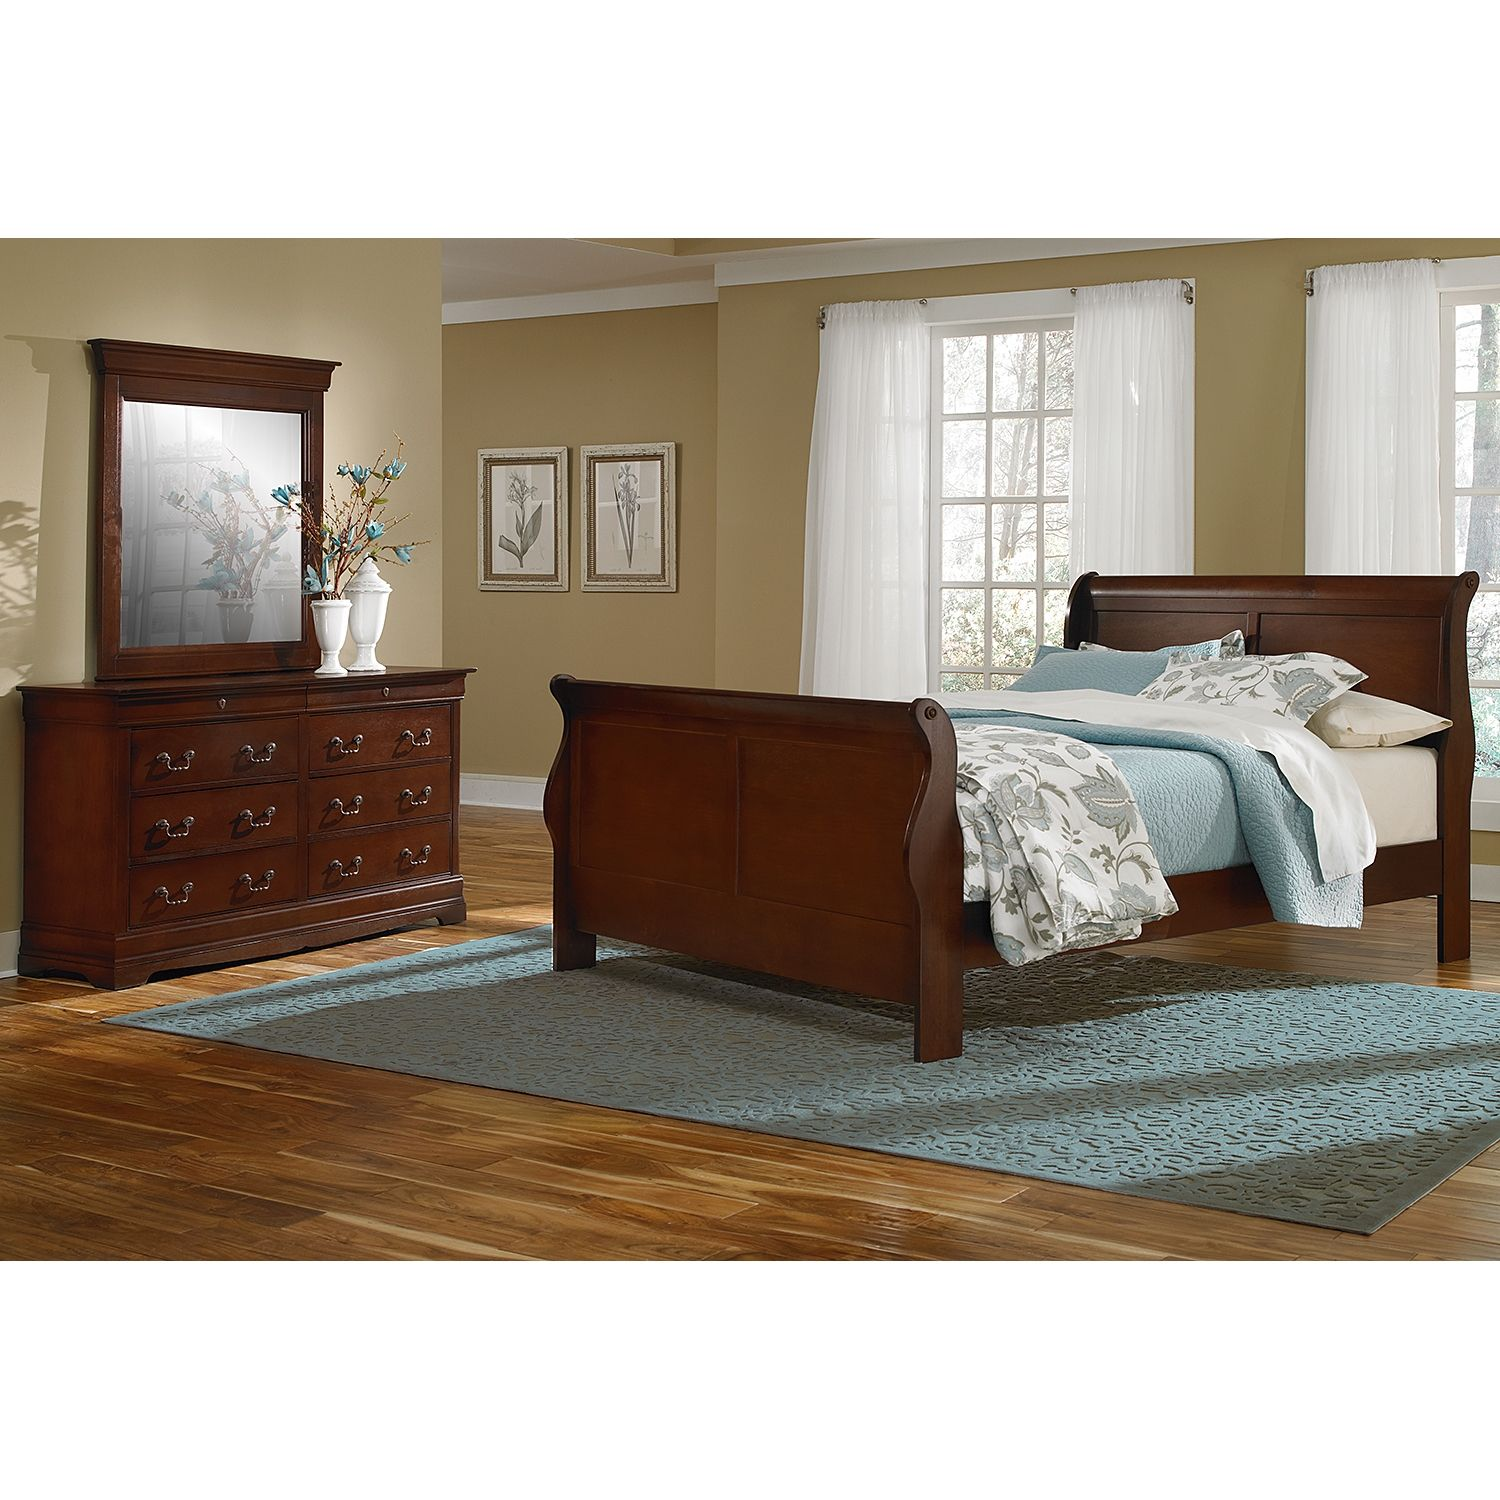 Neo Classic Cherry Ii 5 Pctwin Bedroom  Value City Furniture Simple Twin Bedroom Sets Review